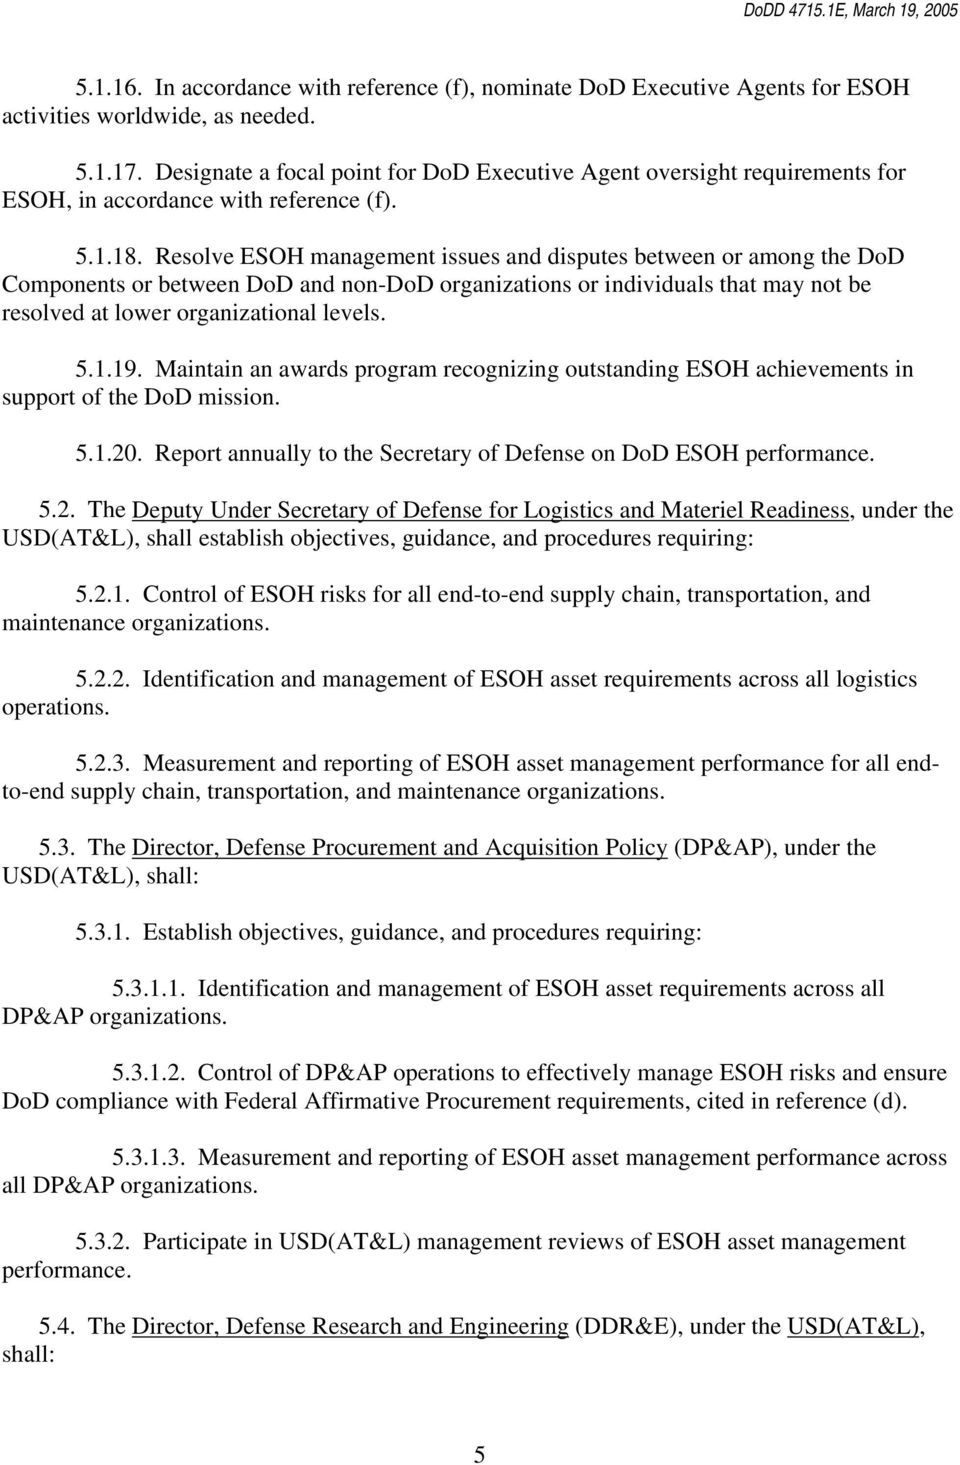 Resolve ESOH management issues and disputes between or among the DoD Components or between DoD and non-dod organizations or individuals that may not be resolved at lower organizational levels. 5.1.19.